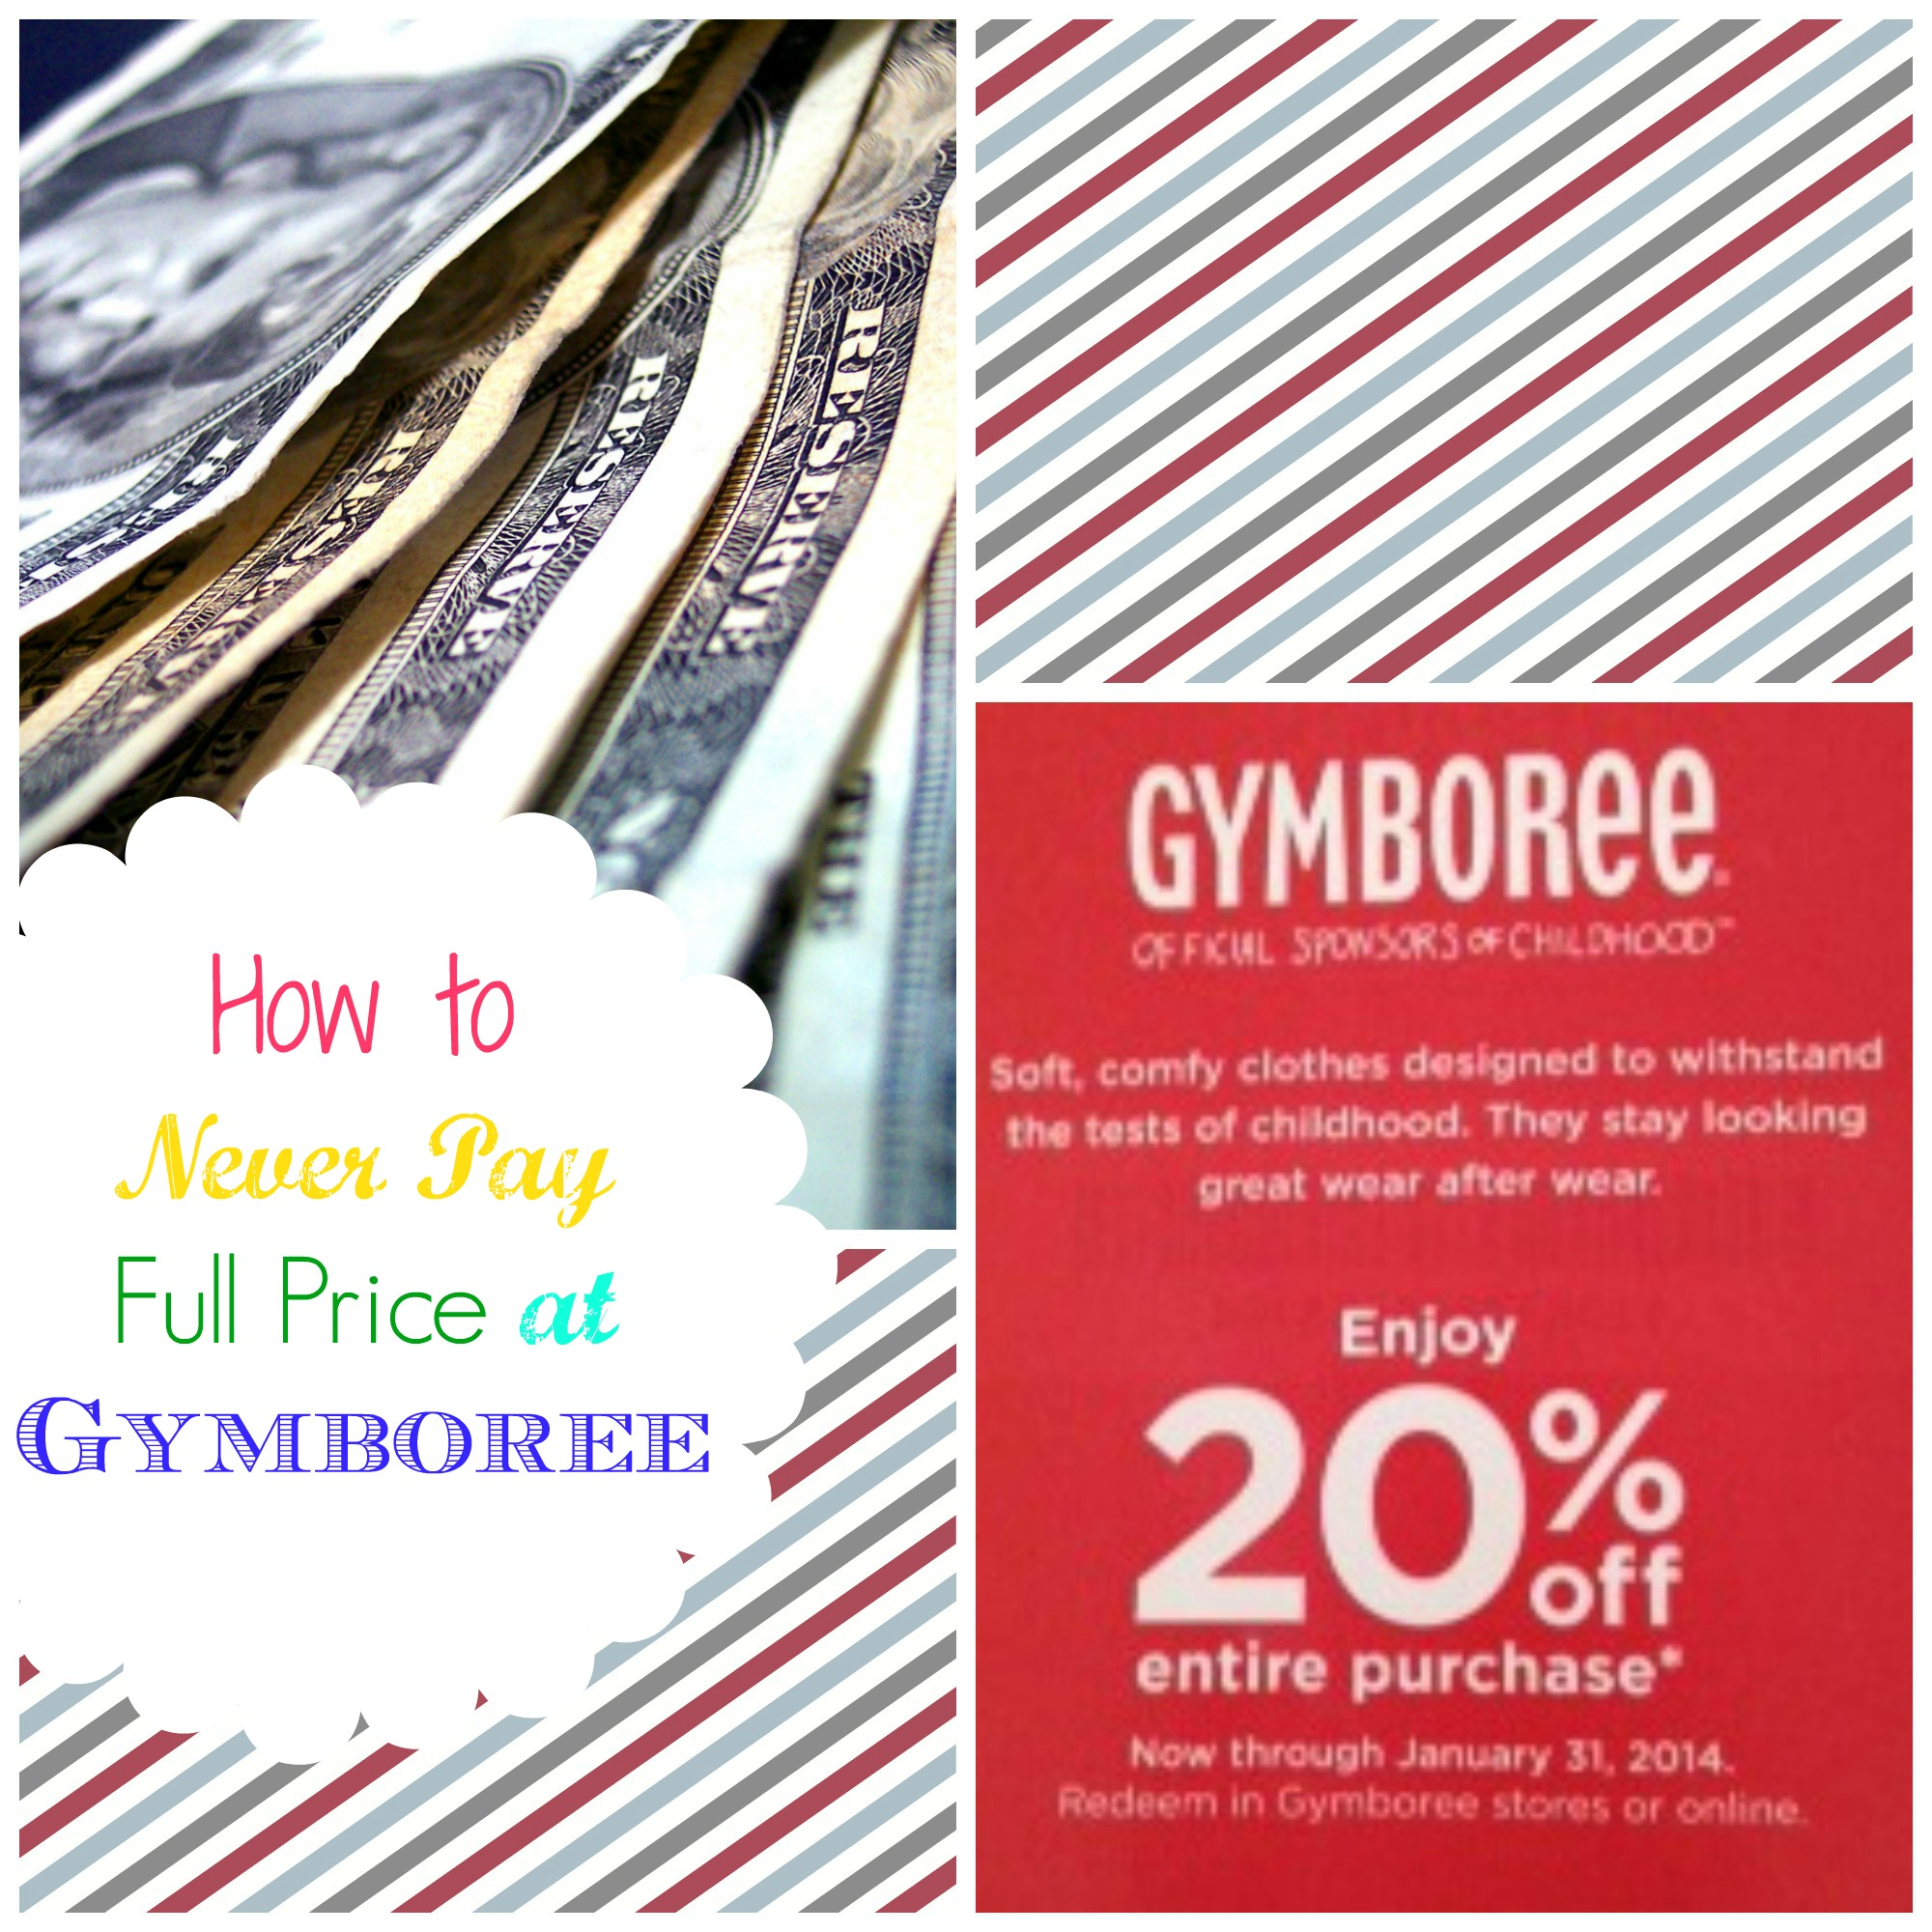 Gymboree coupon code